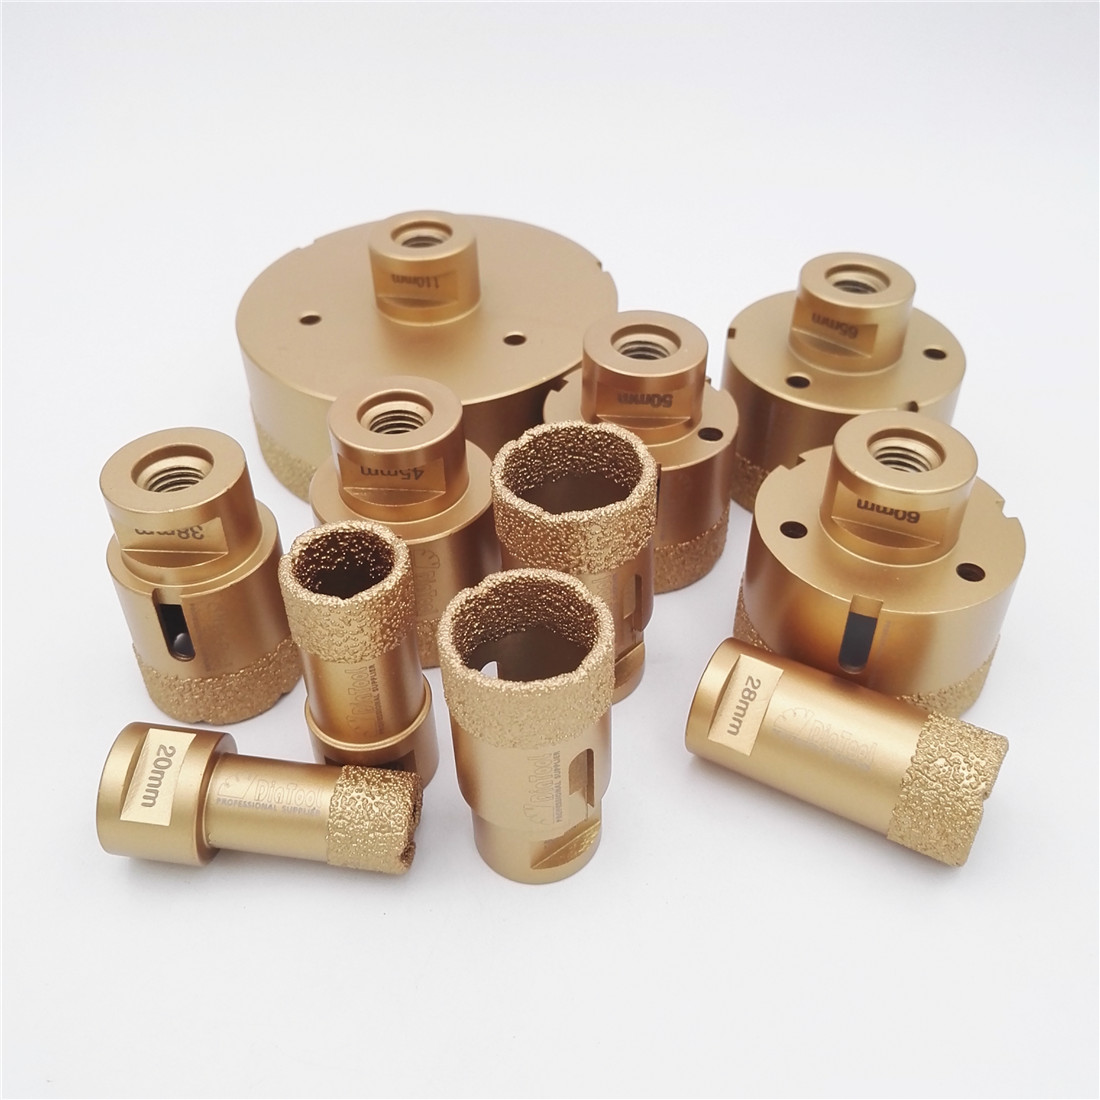 DIATOOL 1pc Vacuum Brazed Diamond Drilling Core Bits With 15MM Diamond Height M14 Connection Drill Bits Hole Saw